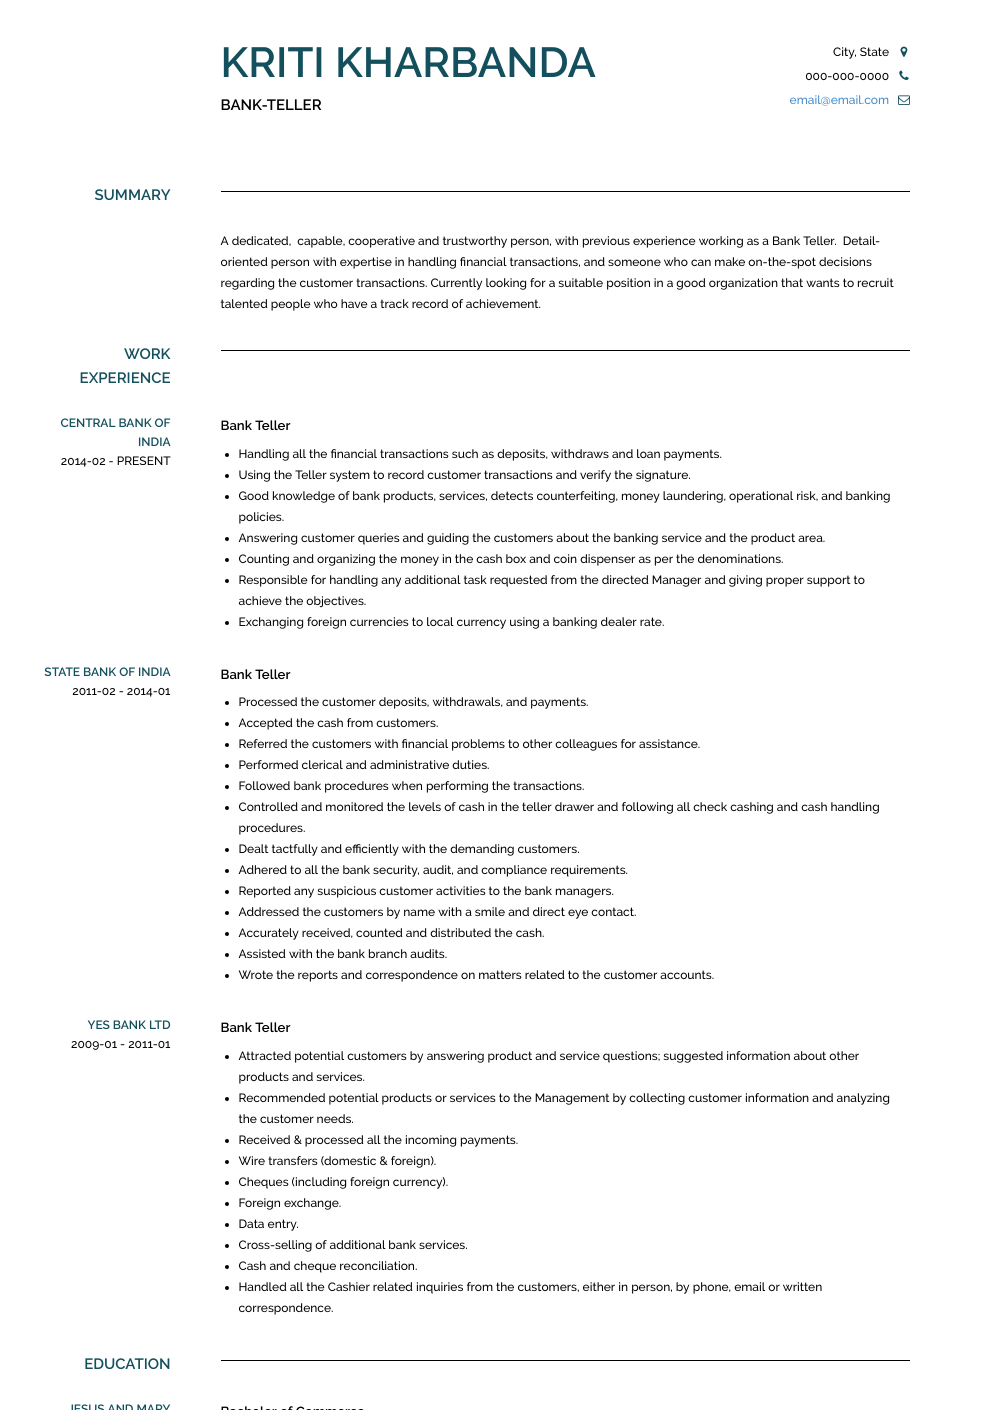 Bank Teller Resume Sample and Template